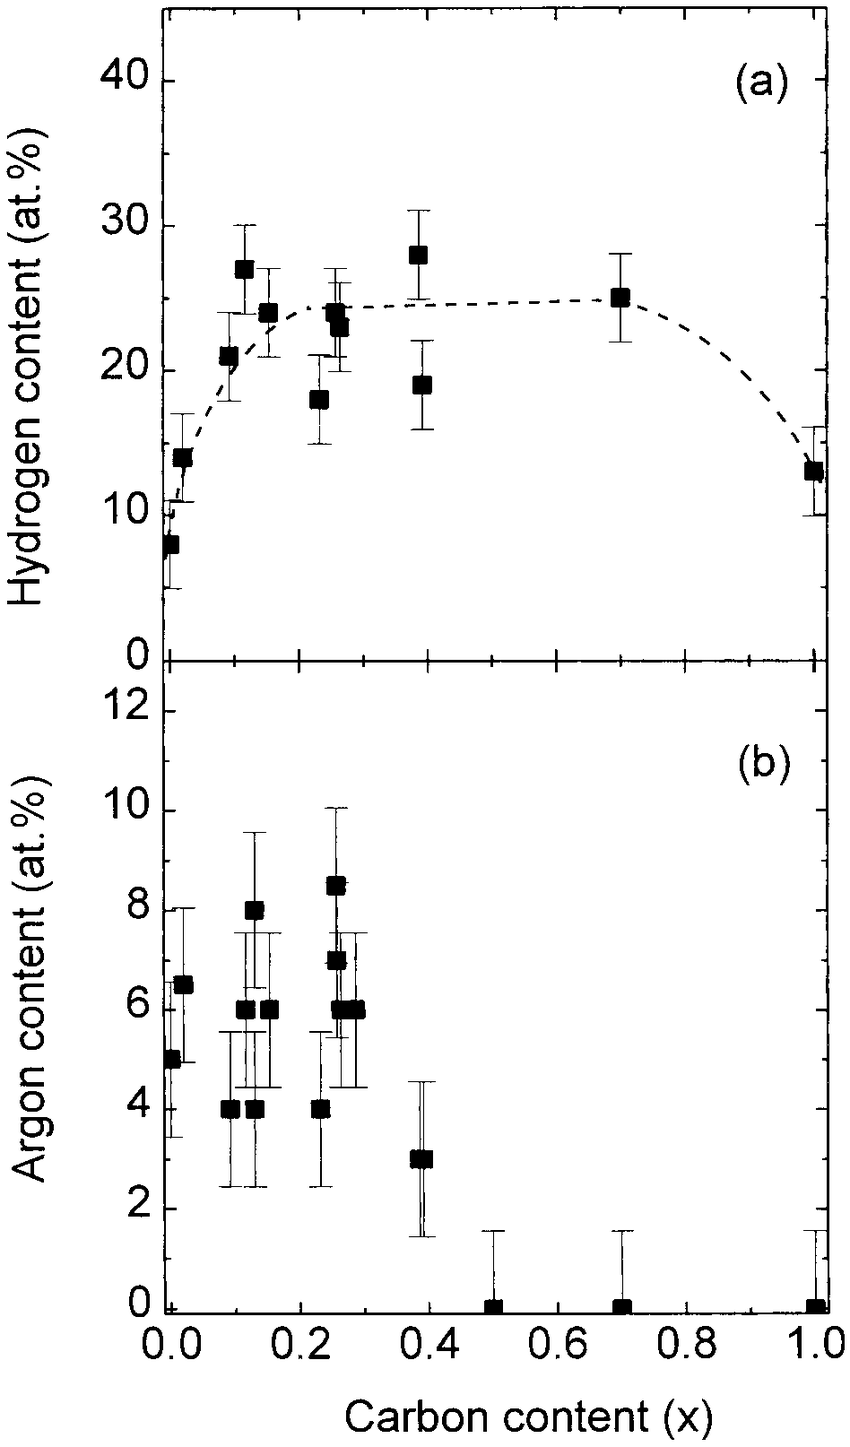 medium resolution of a hydrogen concentration as a function of carbon content obtained by a 2 2 mev he